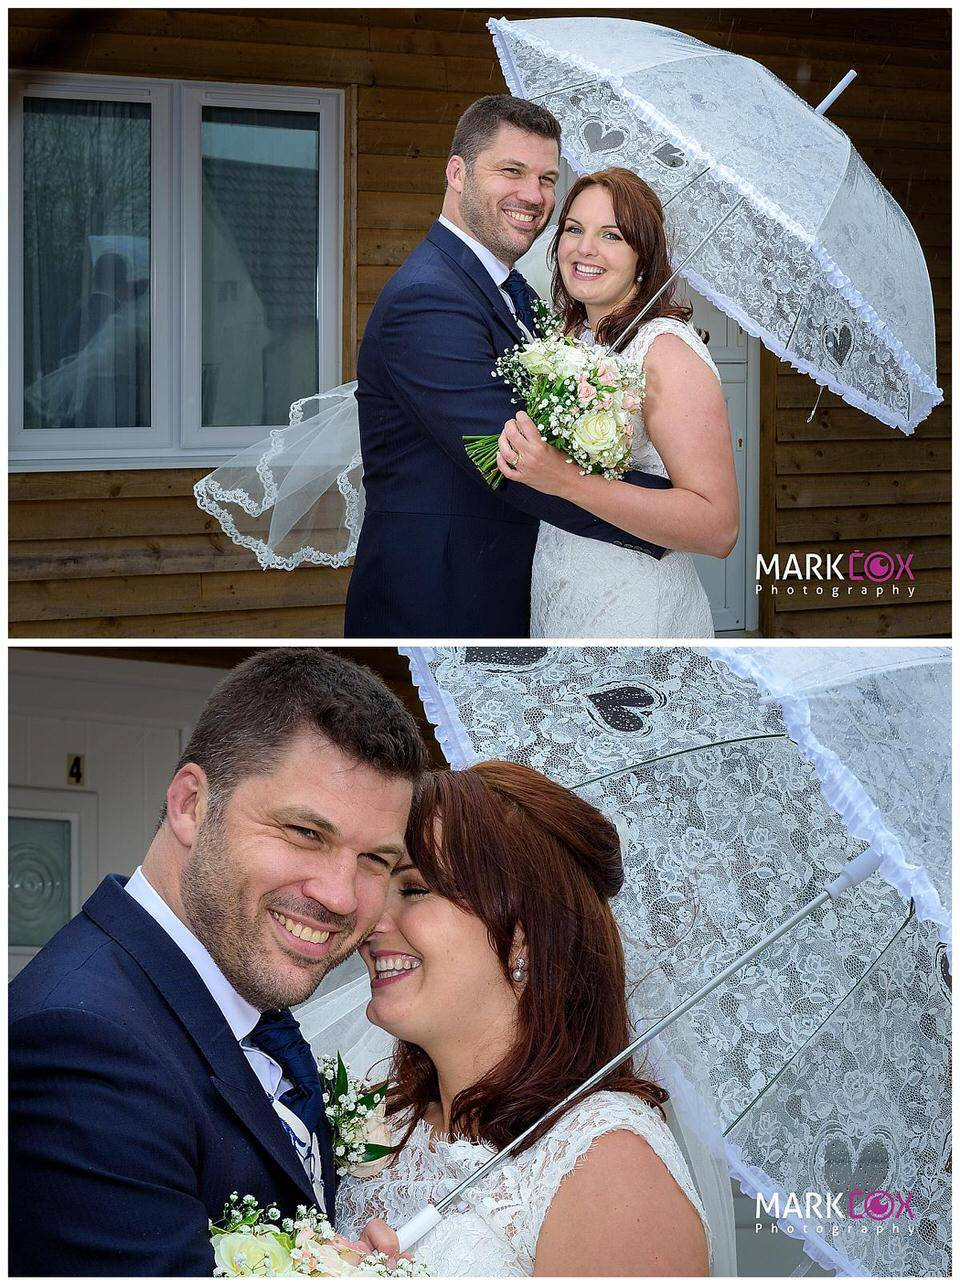 Wedding Photography Special Offer 16